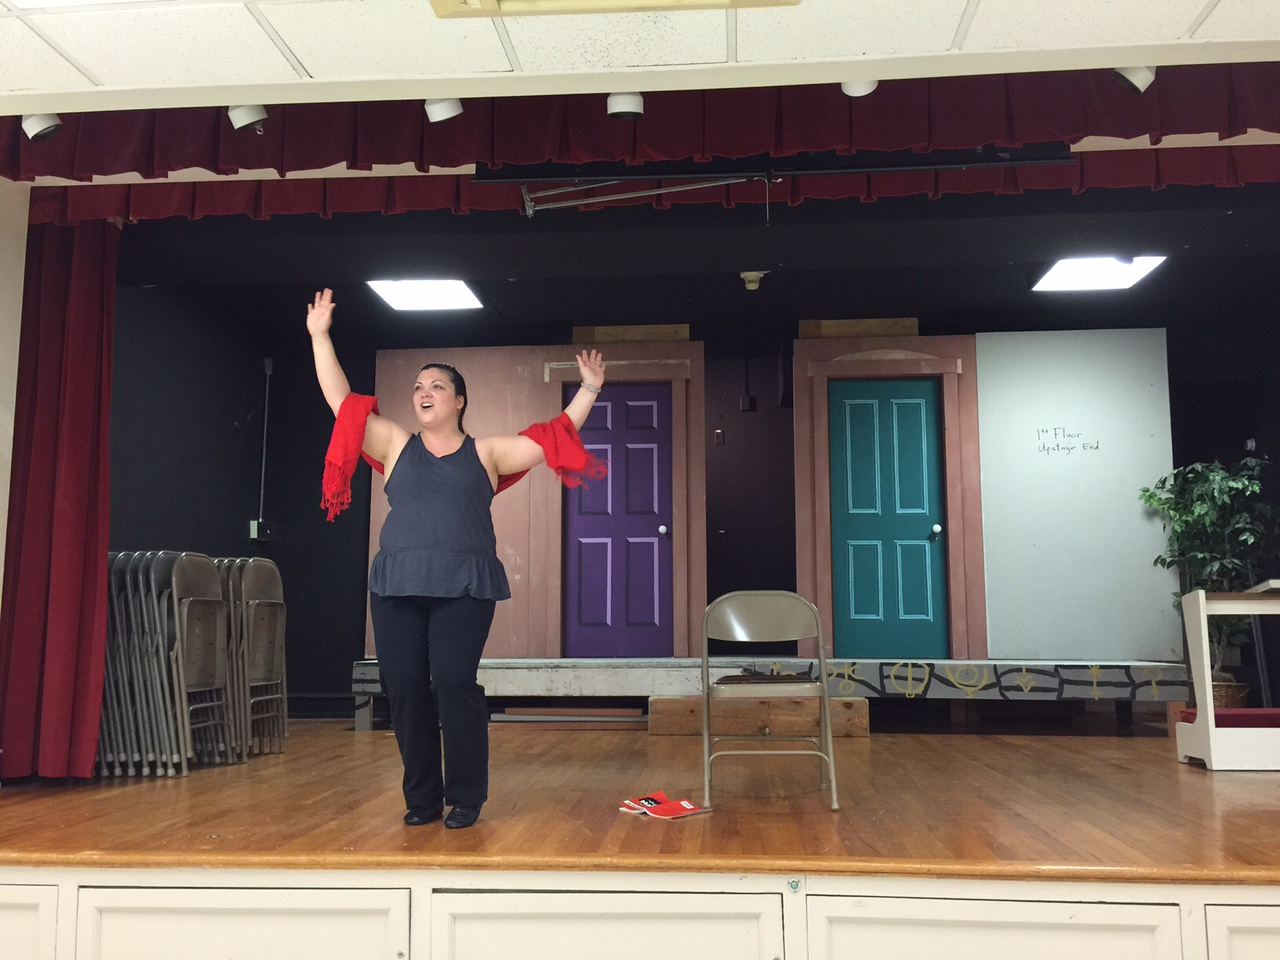 Rehearsal - I Just Want to Be a Star